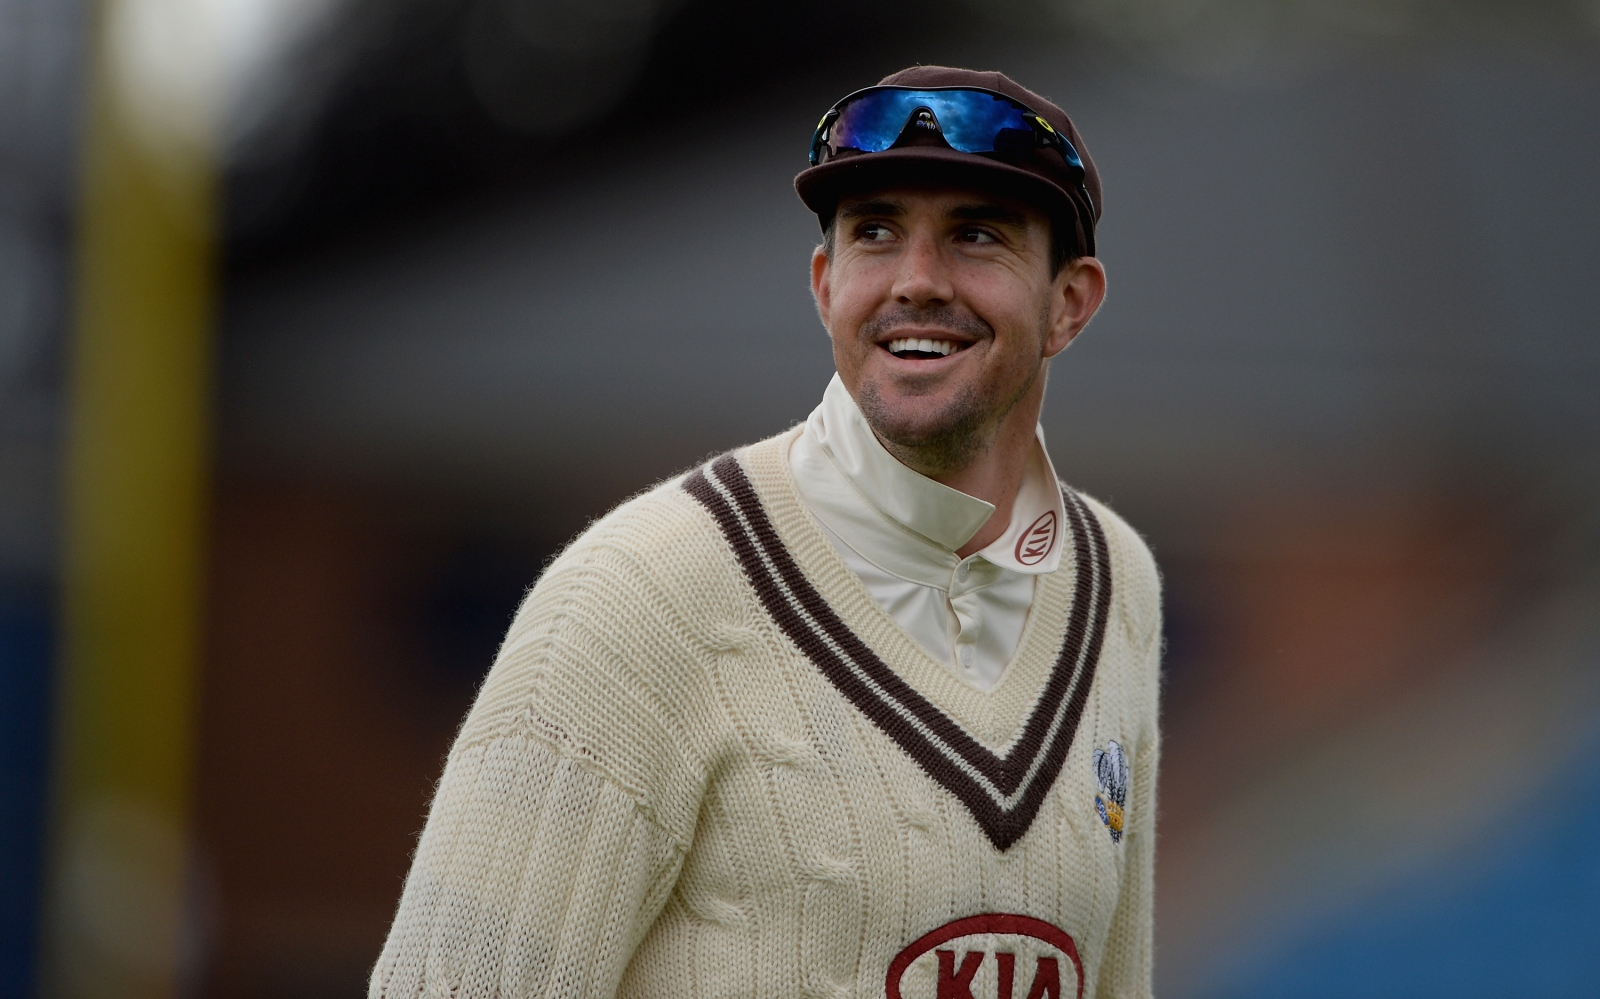 kevin pietersen - photo #35